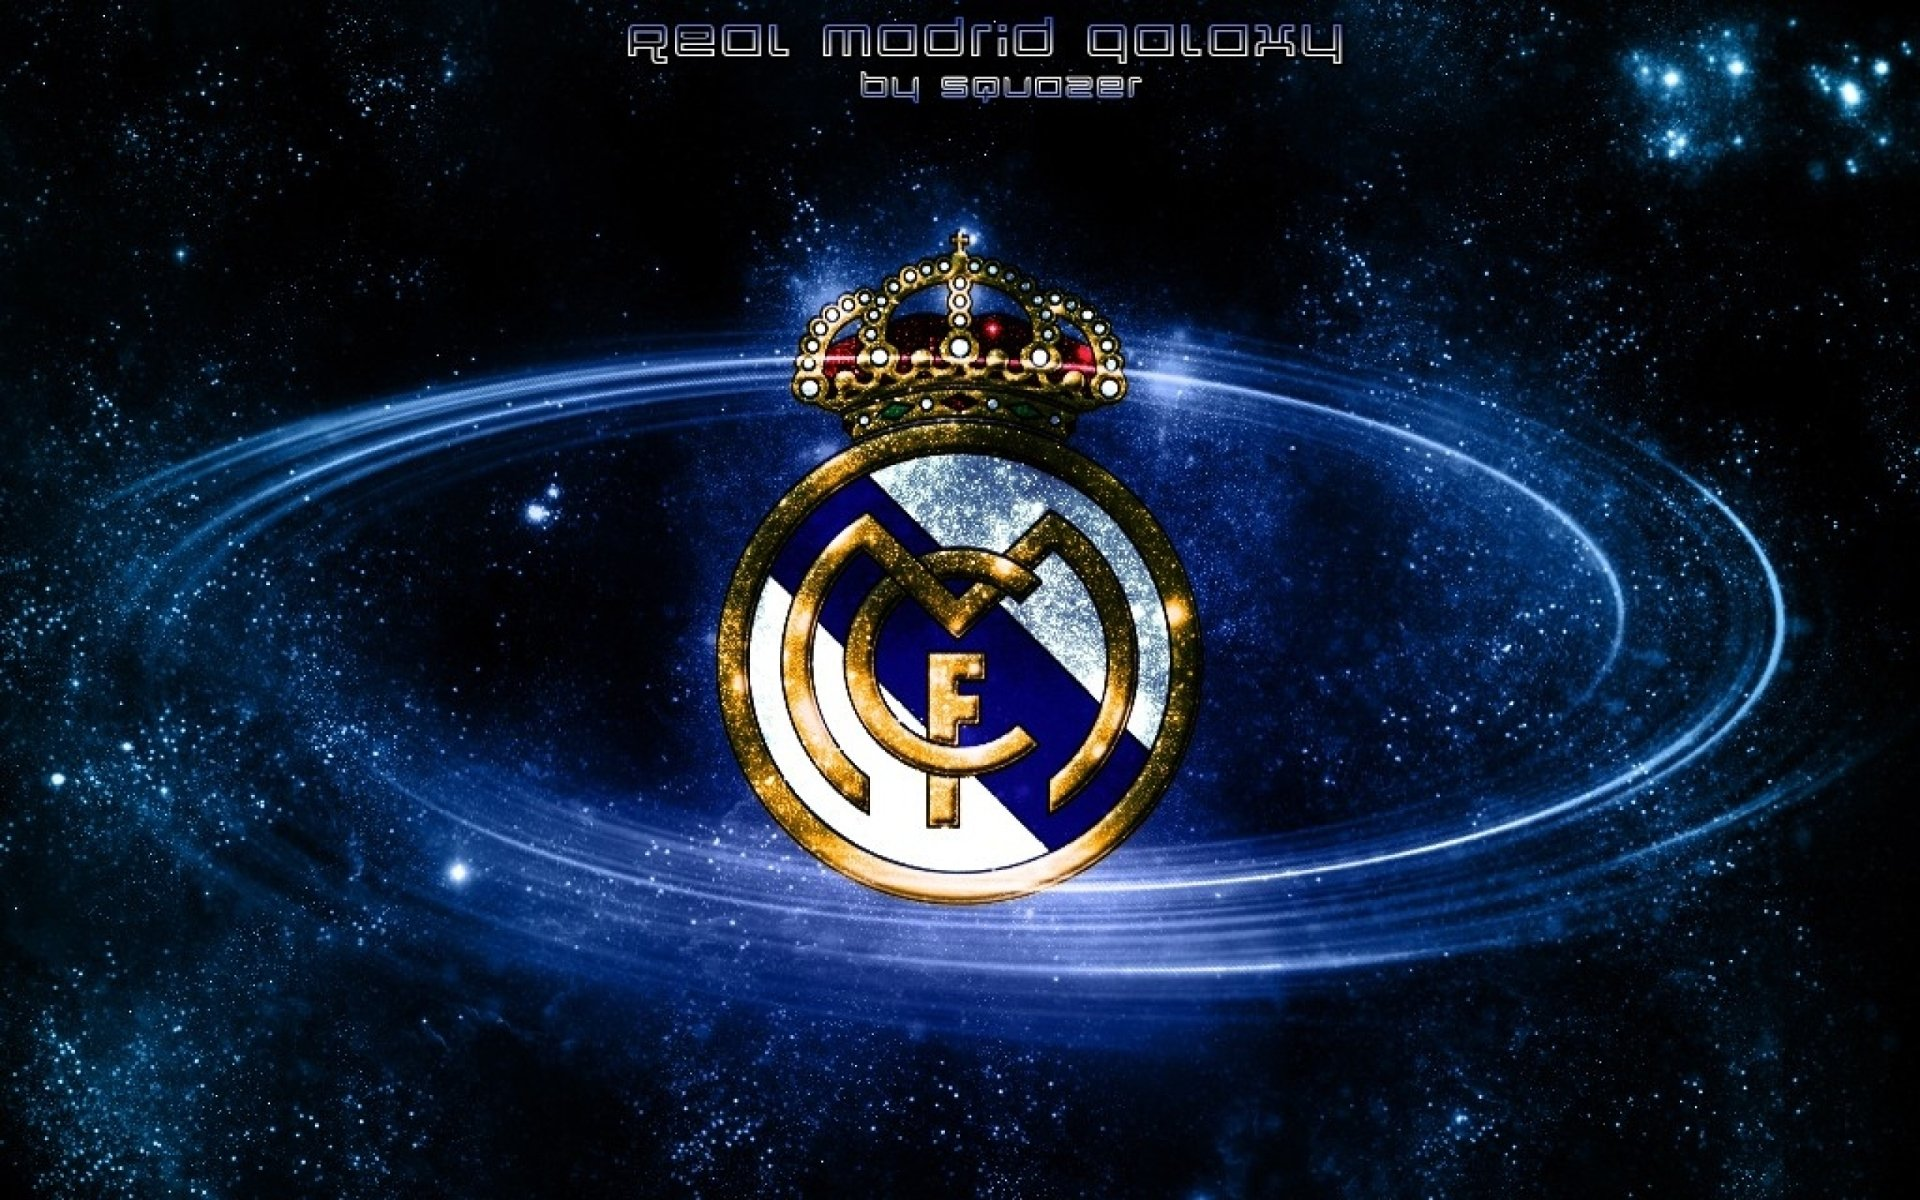 Real Madrid Iphone 4 Wallpaper Real Madrid C F Full Hd Fond D 233 Cran And Arri 232 Re Plan